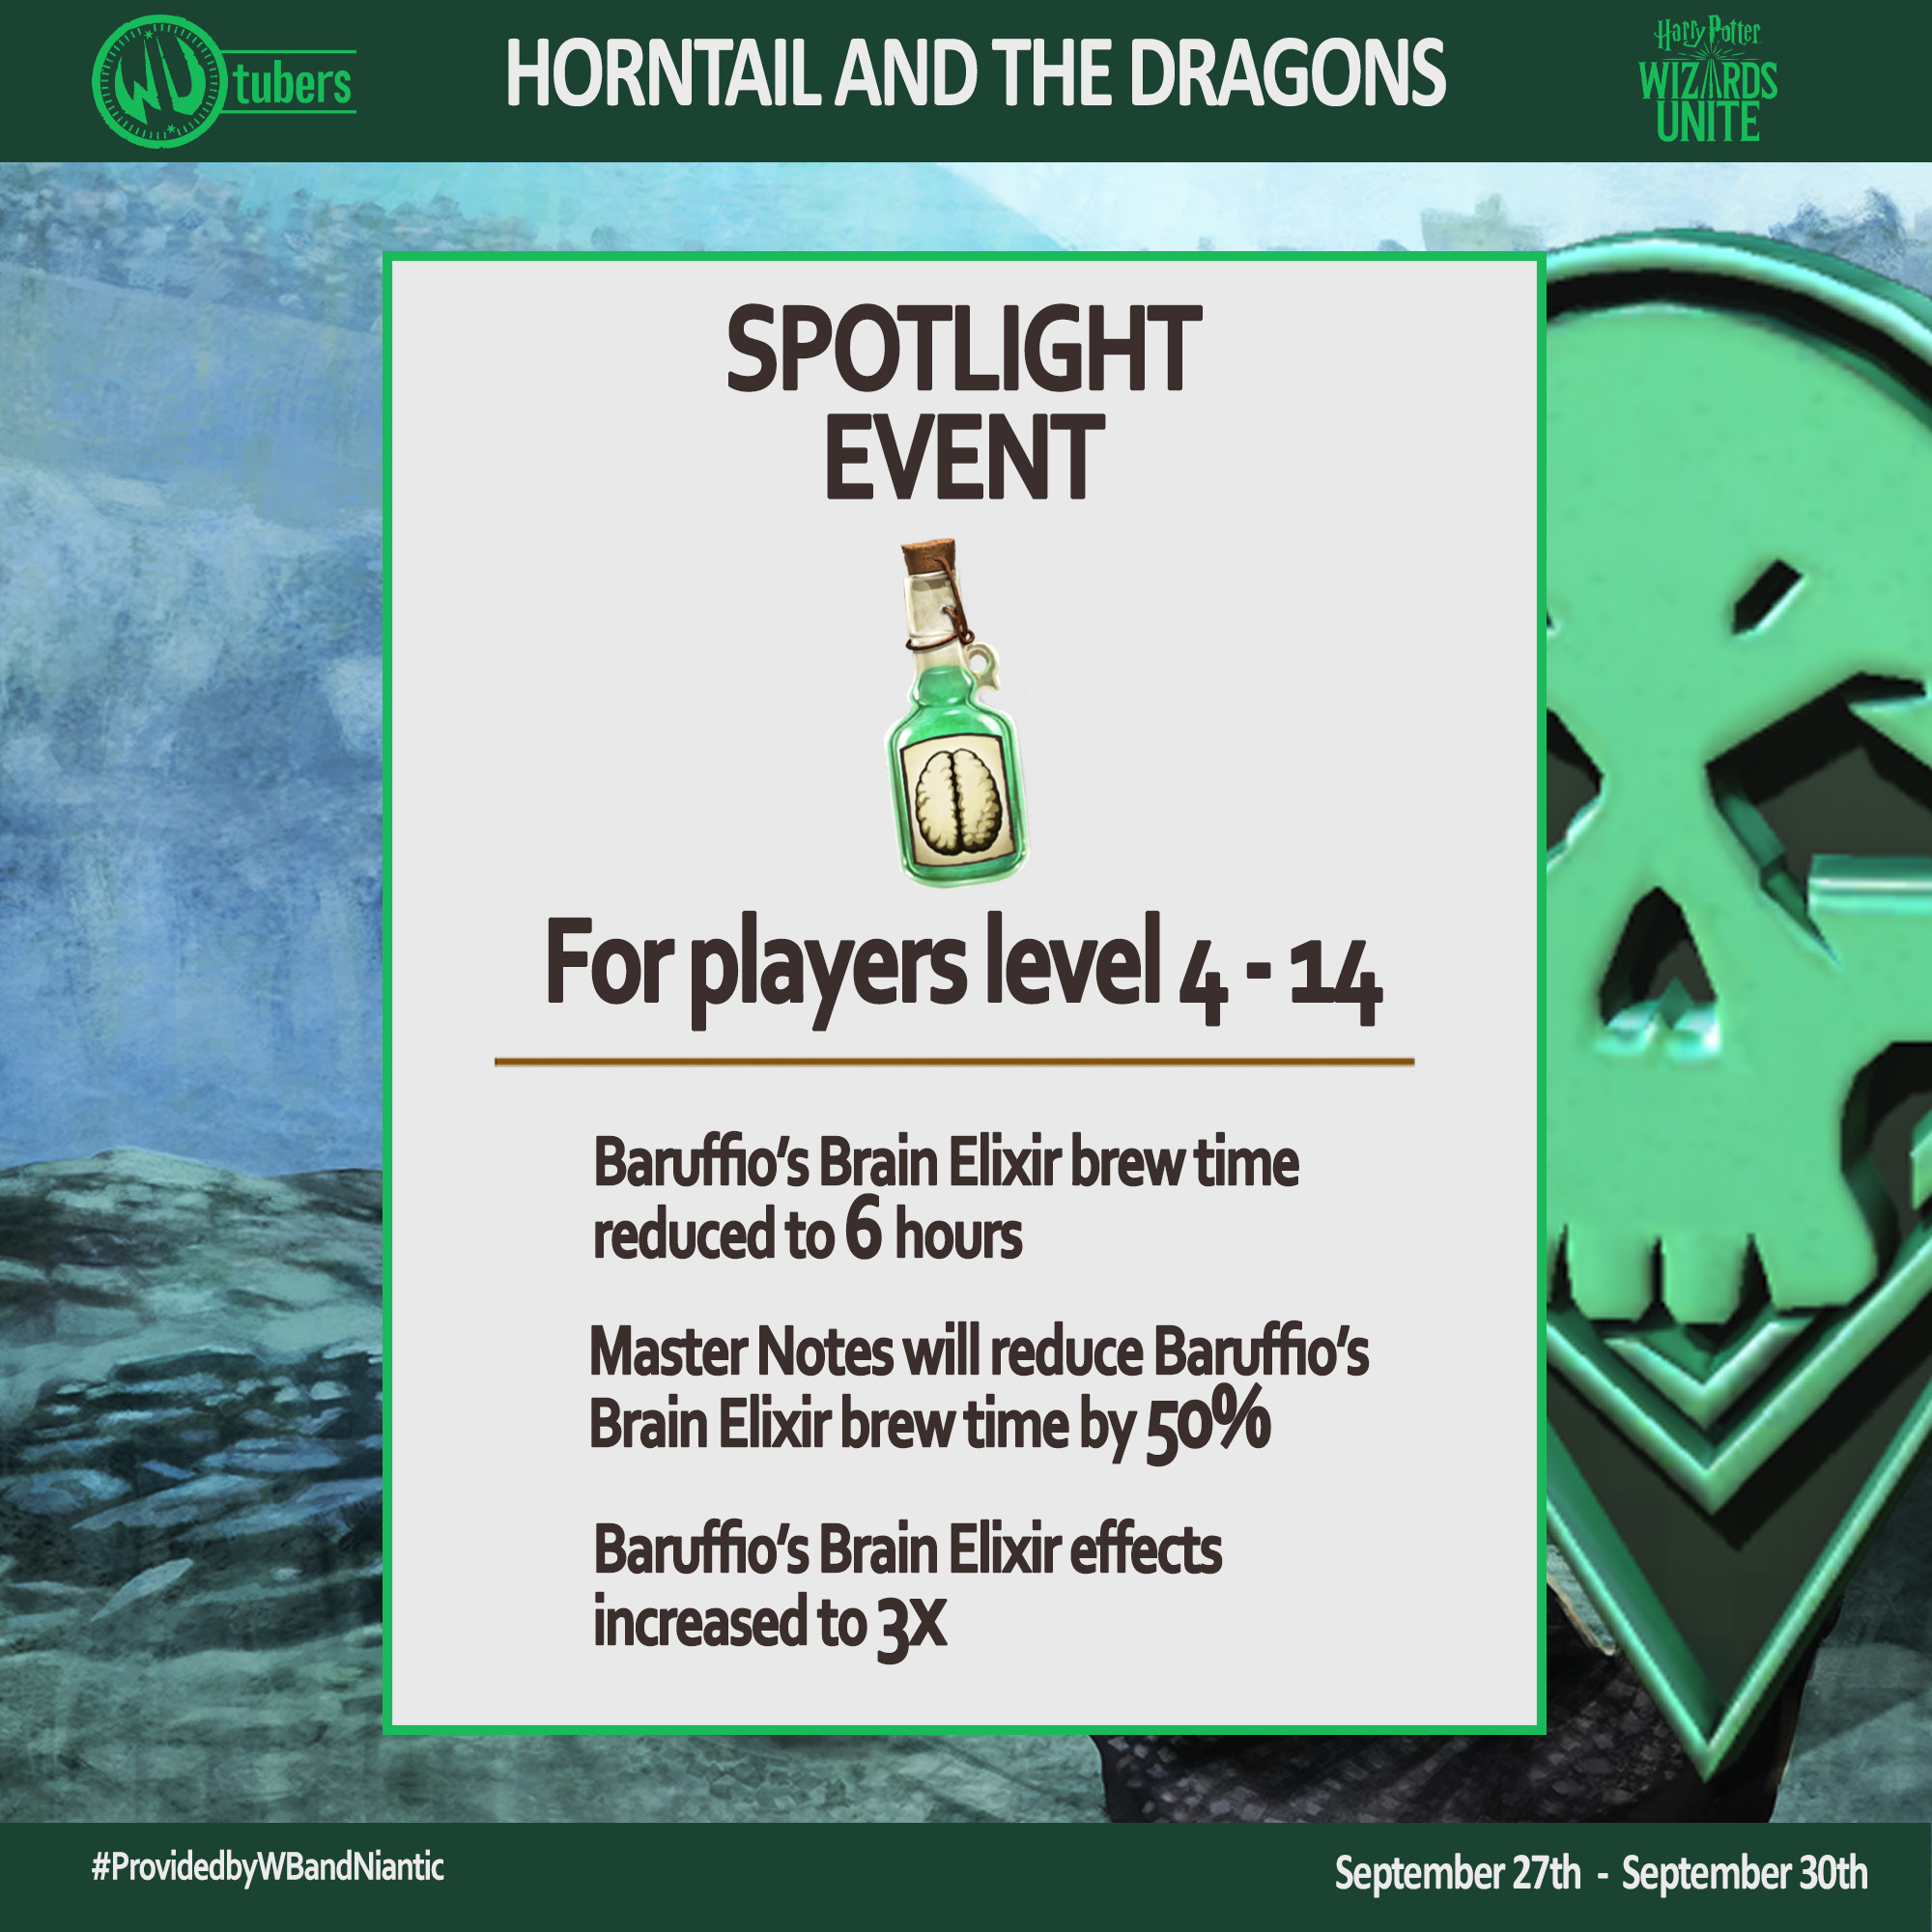 Horntail__Dragons_Event_BBE.jpg